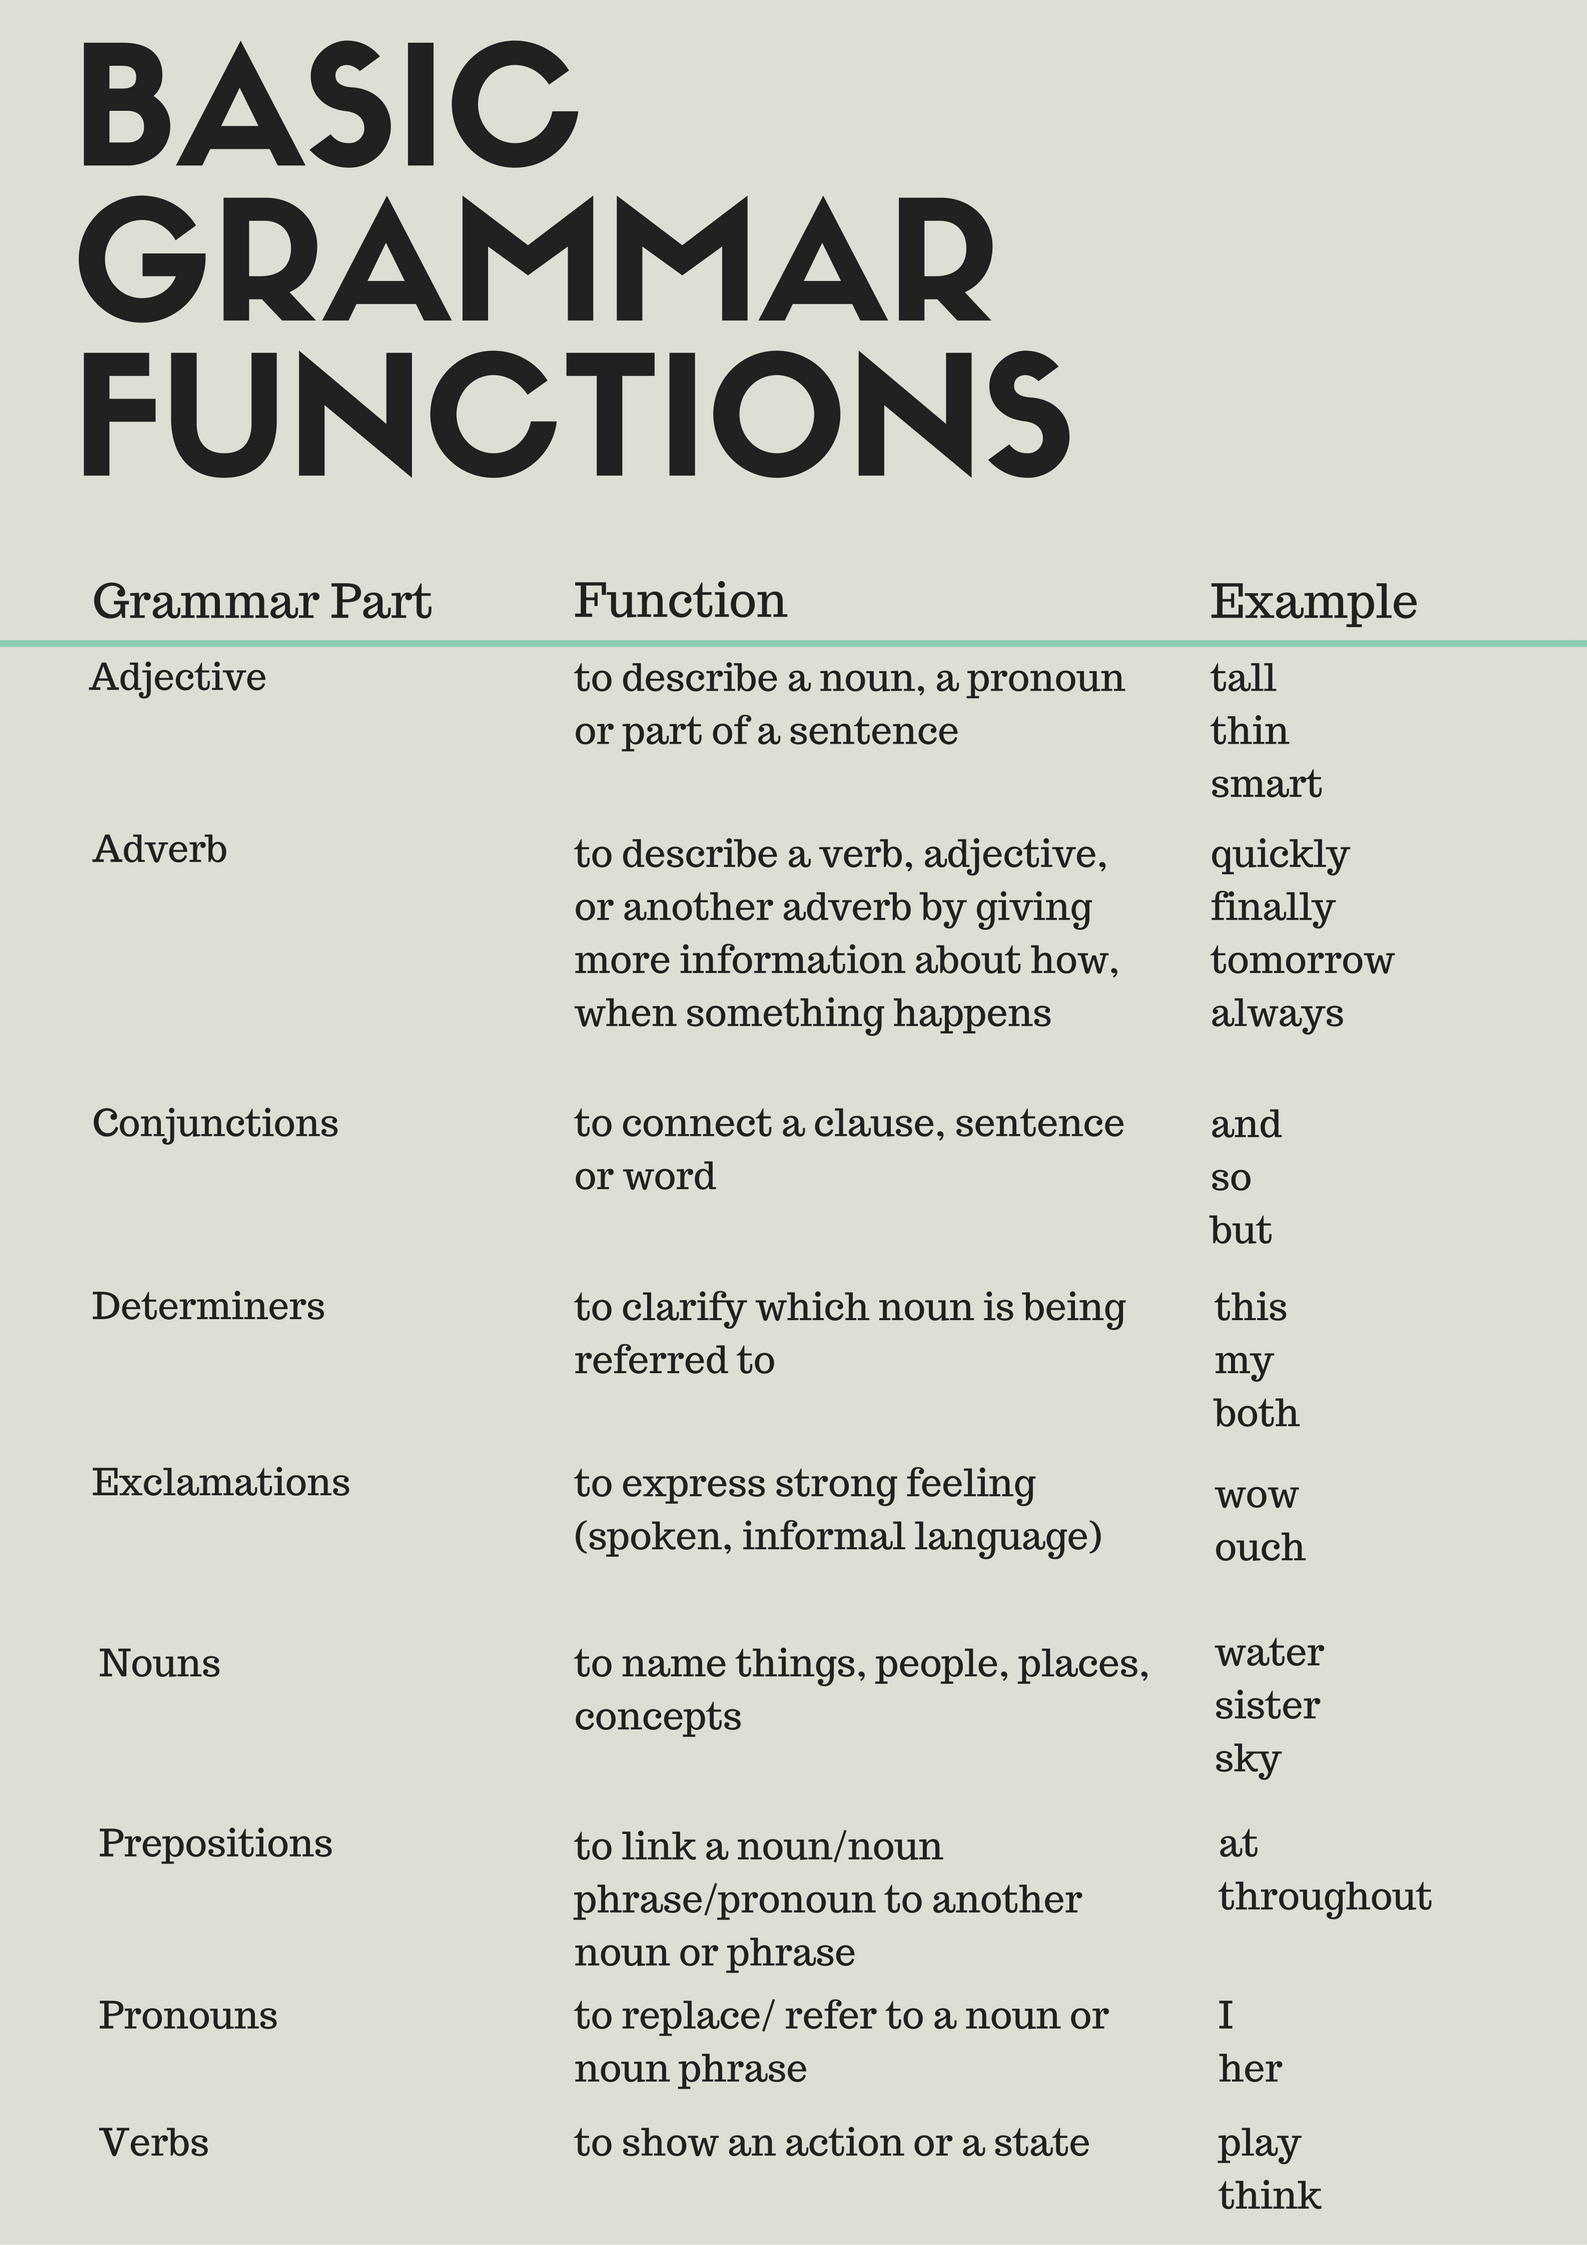 Basic Grammar Functions